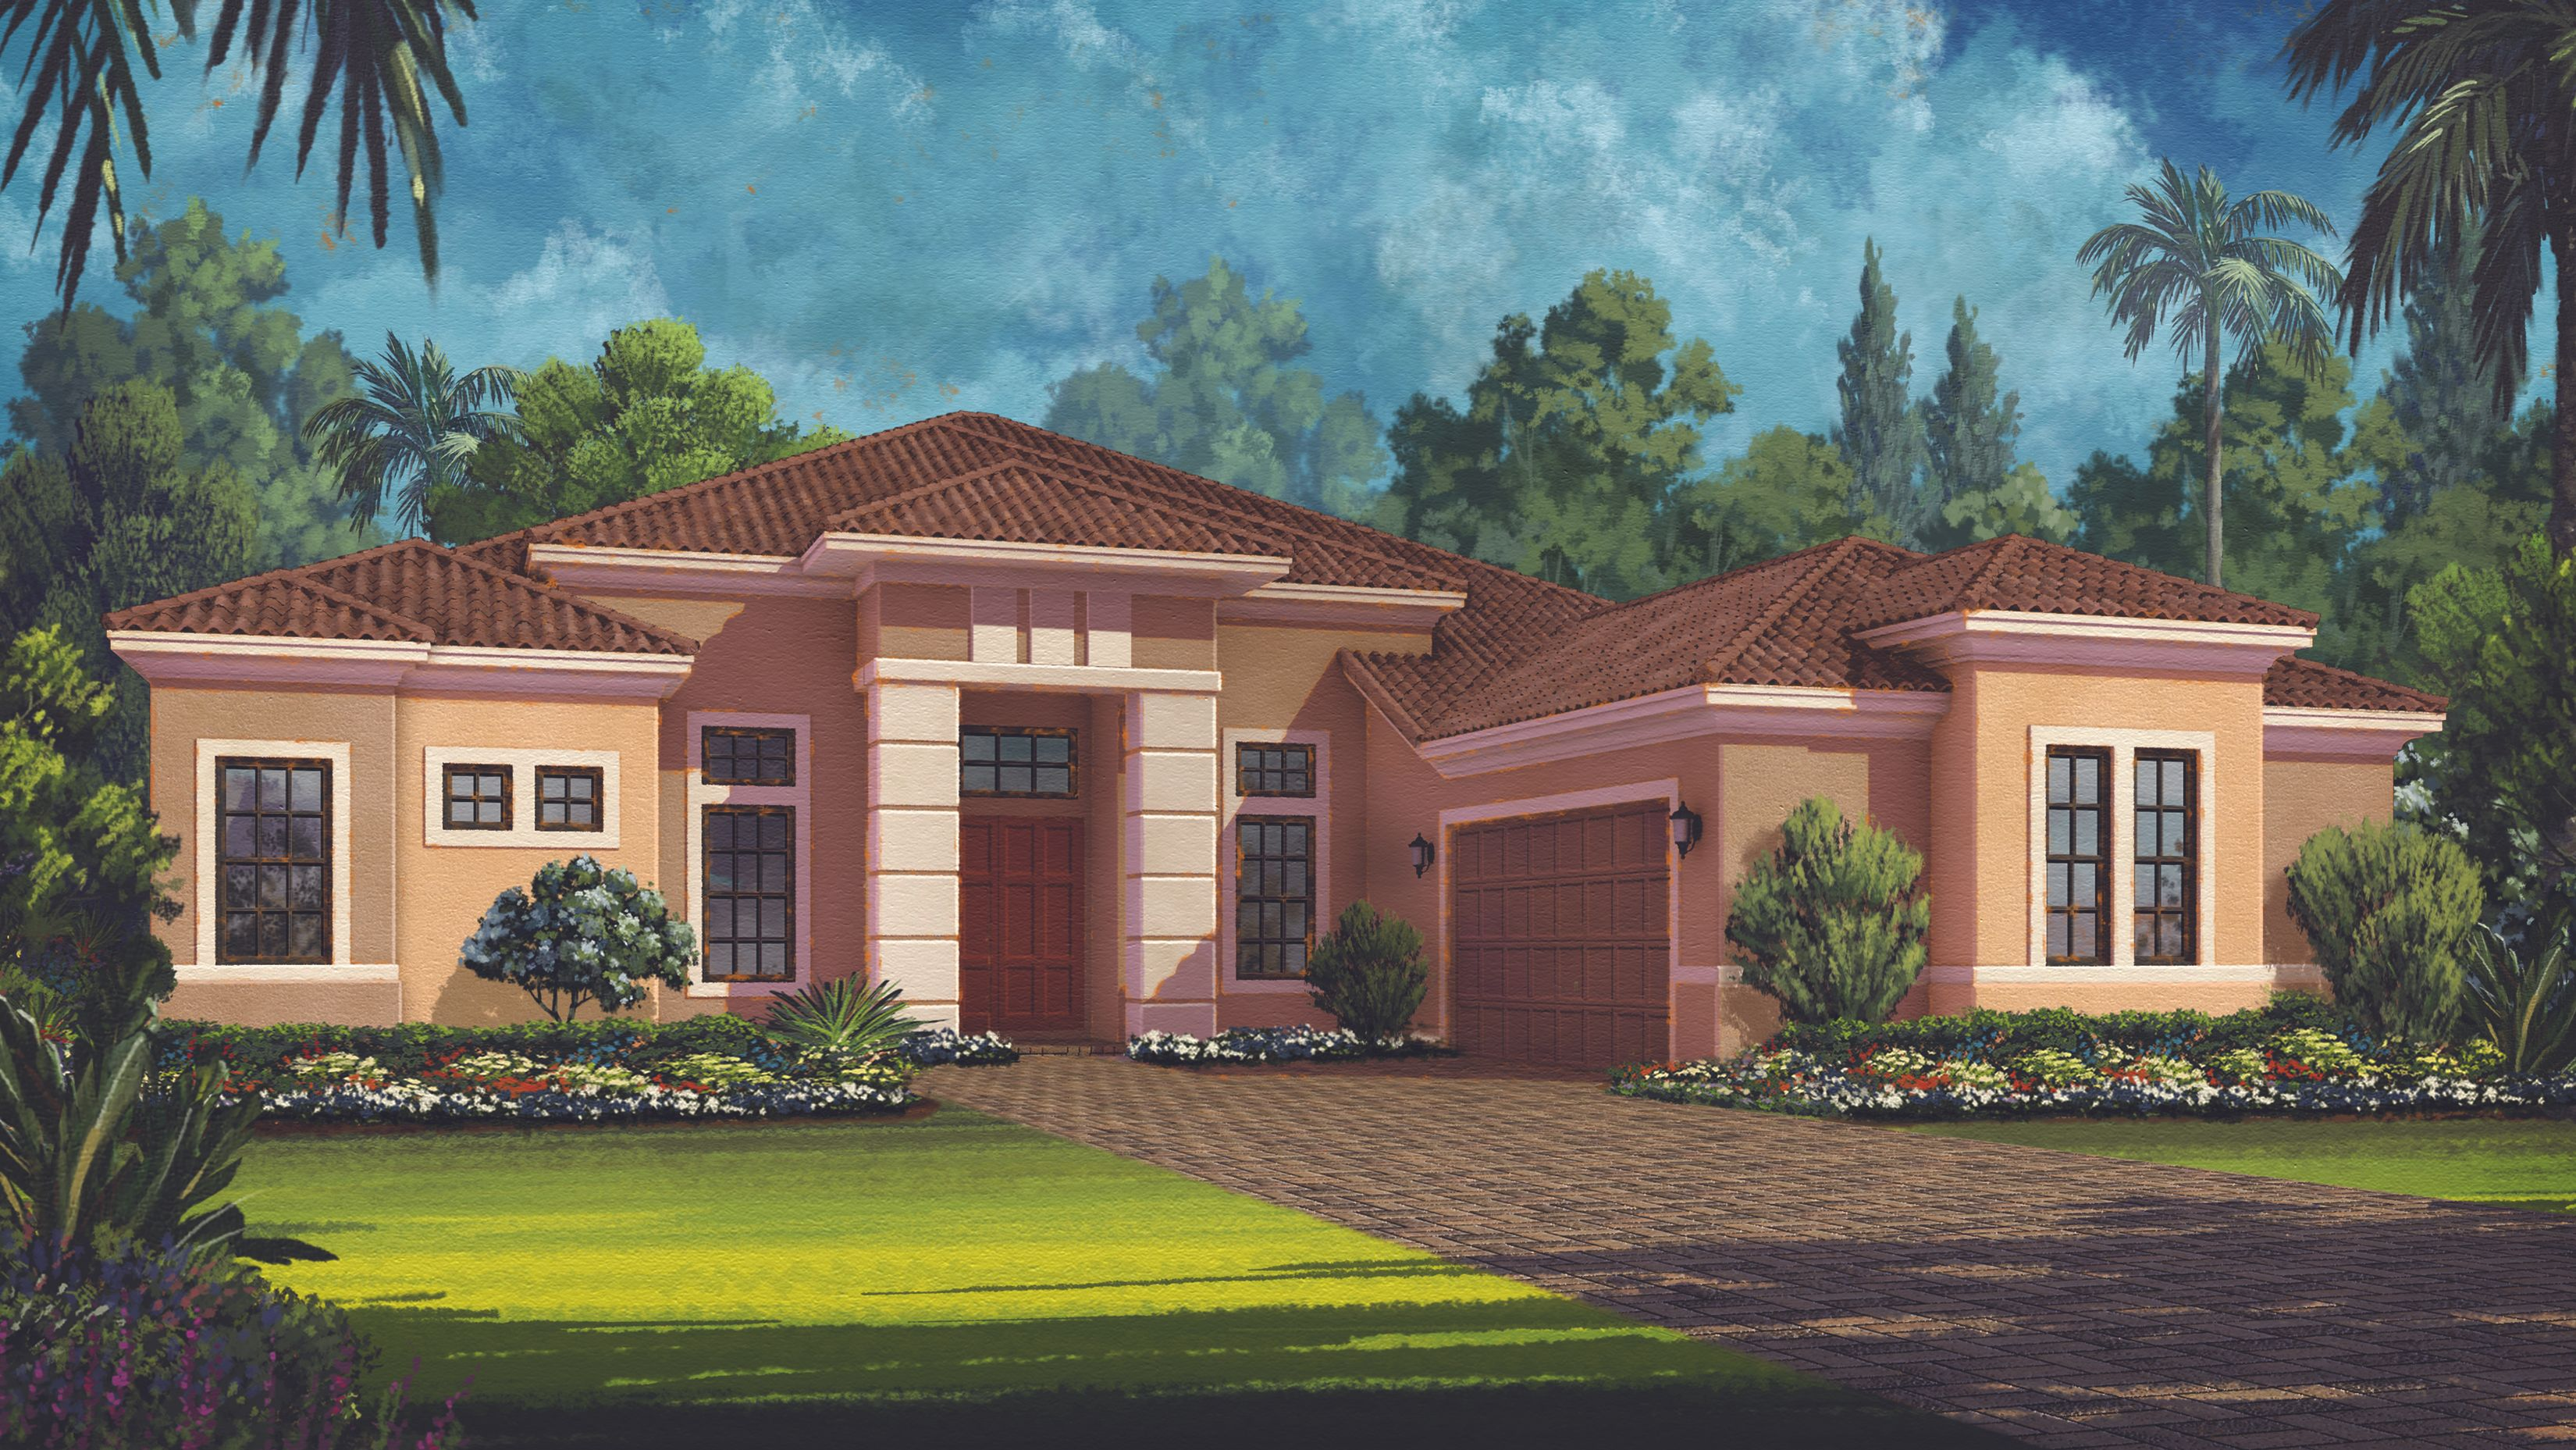 Single Family for Active at Mercede 4729 Benito Court Lakewood Ranch, Florida 34211 United States